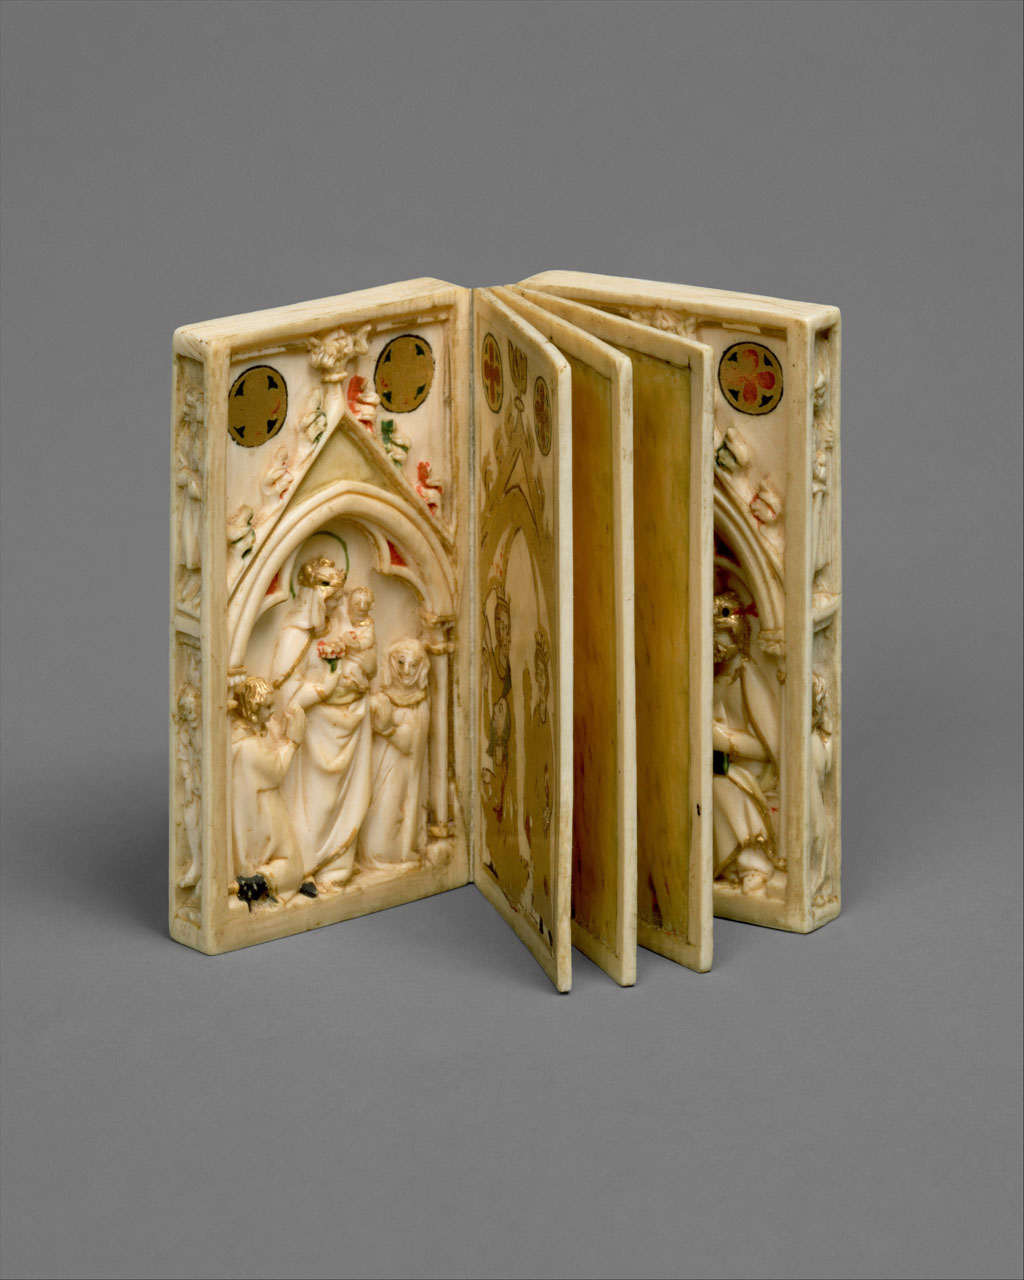 highlights from the met's collection (6)